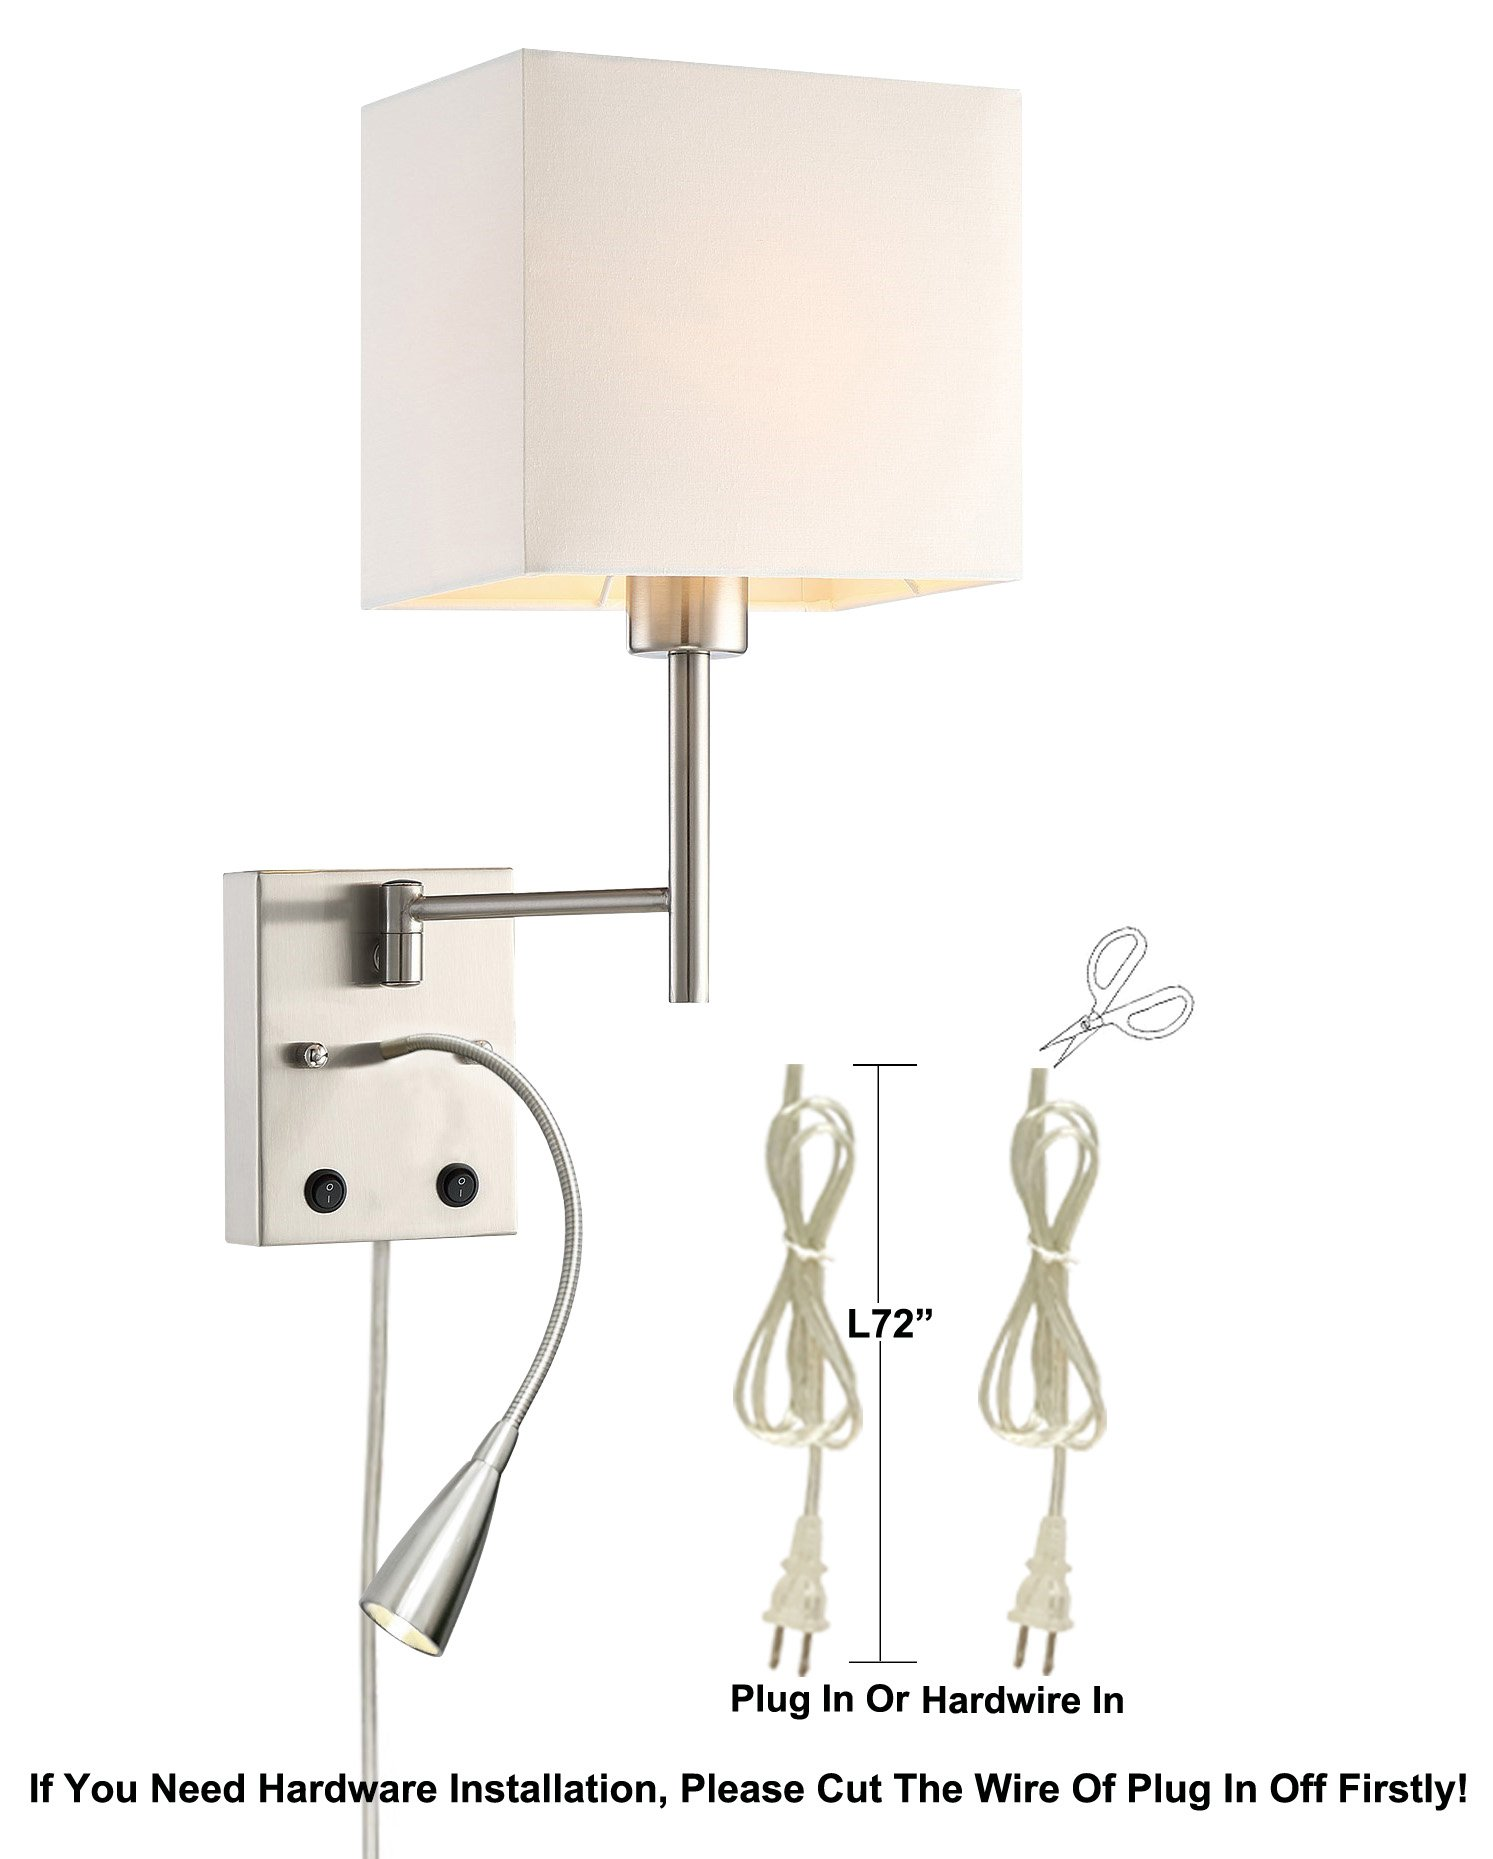 HomeFocus USB LED Swing Arm Bedside Reading Wall Lamp Light,LED Reading Swing Arm Wall Lamp Light,Wall Sconces,Living Room Wall Lamp,Corridor Wall Lamp,2 Lights 2 Switches LED 3W 3000K and E26 Holder